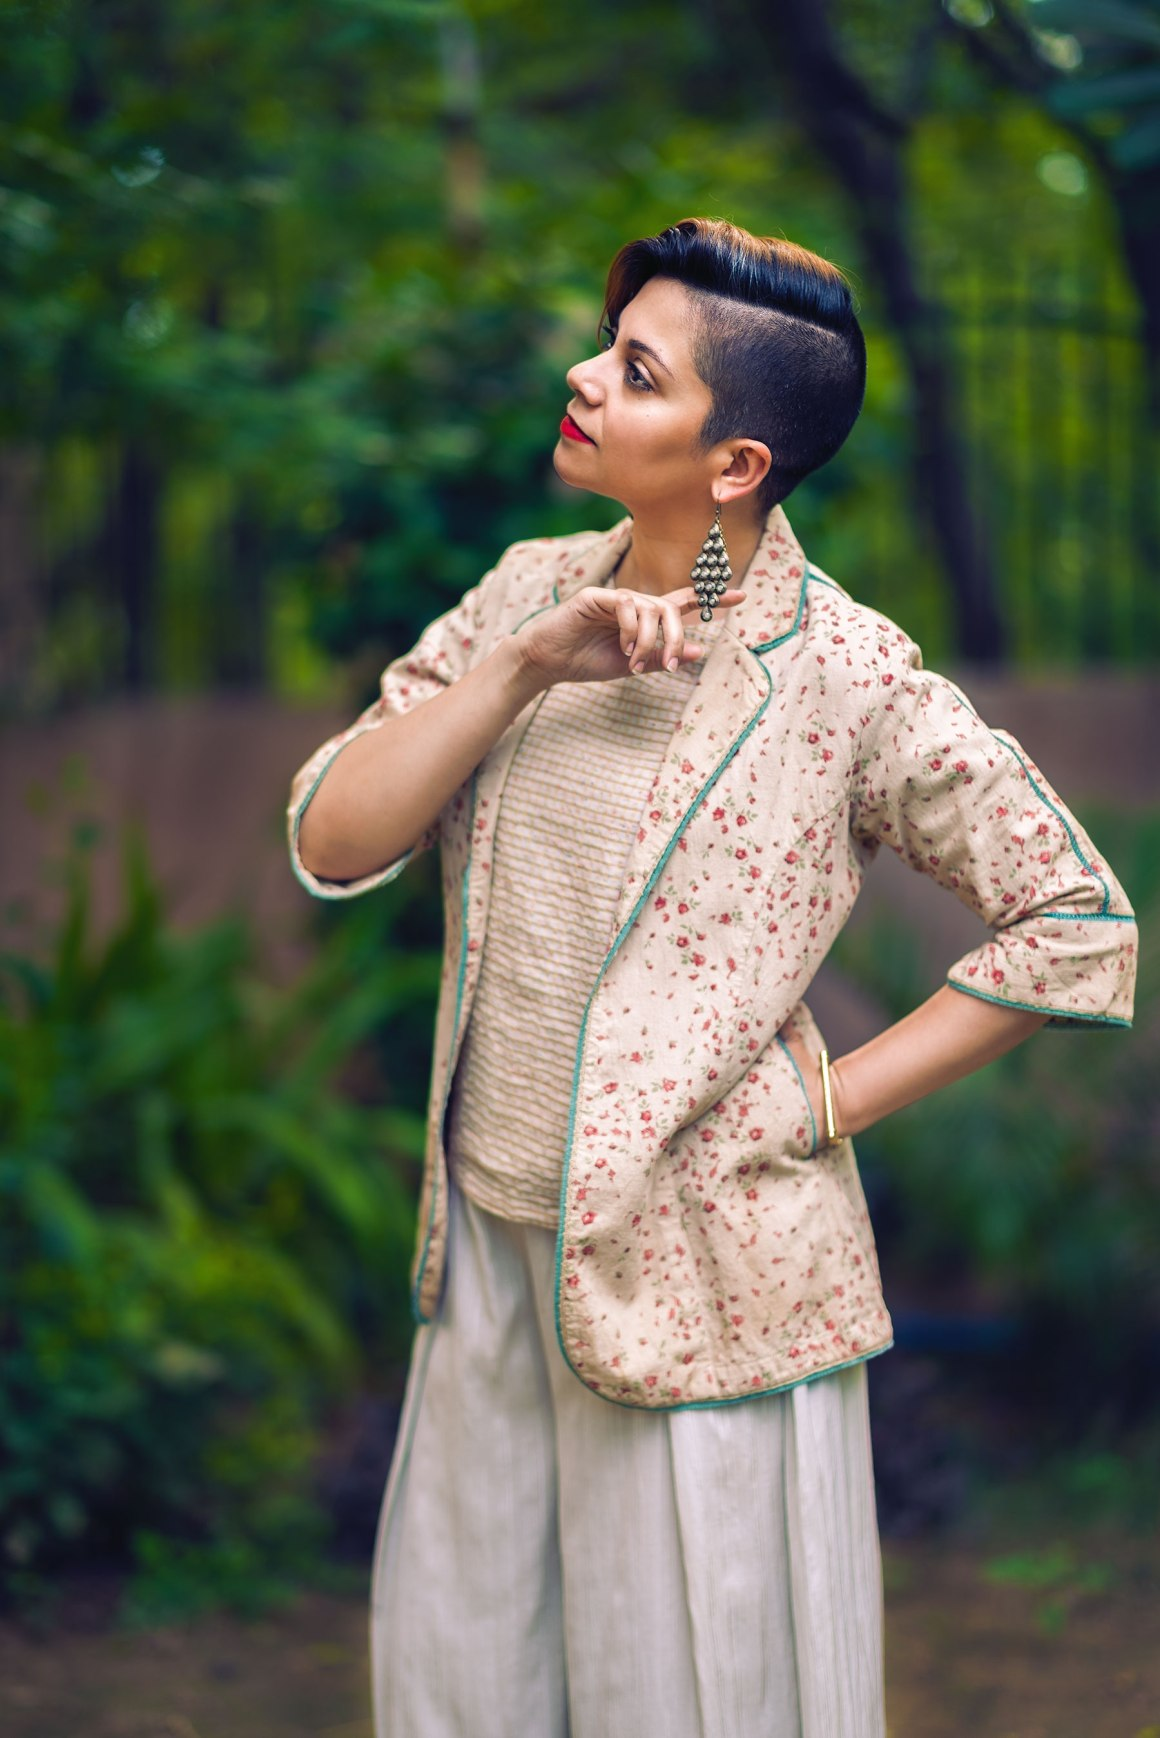 madhurima singh, dhuri, shopdhuri, dhuri label, madeinindia, nainaxstyle, naina style edition 110, coverup, sustainable fashion, slow fashion, style, garments, cotton, bamboo, eucalyptus, chanderi silk, crop top, spectral crop top, jacket, festive, indian wear, formal, naina redhu, naina.co, naina, eyesforfashion, indian fashion, personal style, photographer personal style, azo-free dye, vegetable dye, natural fibers, weave, texture, gold